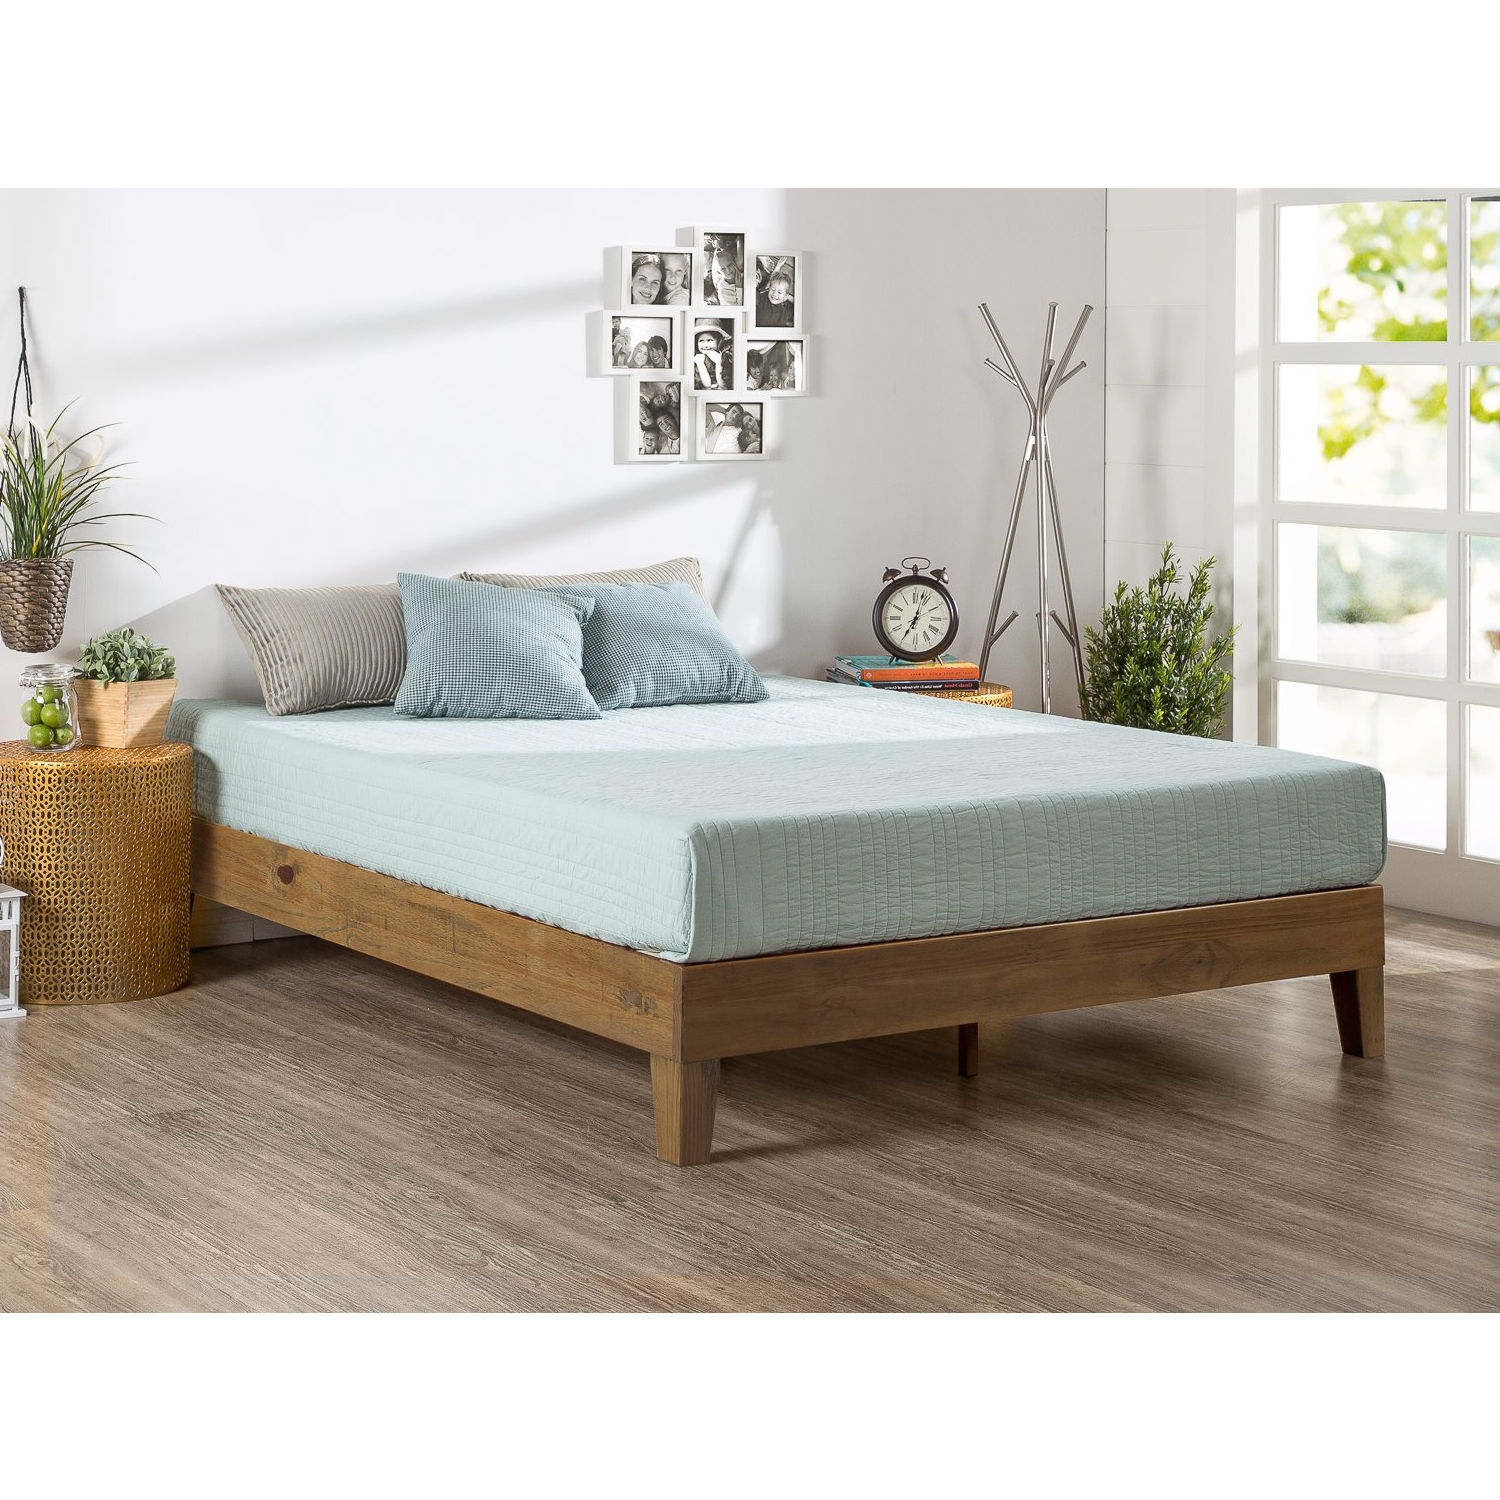 Full size Solid Wood Low Profile Platform Bed Frame in Pine Finish ...